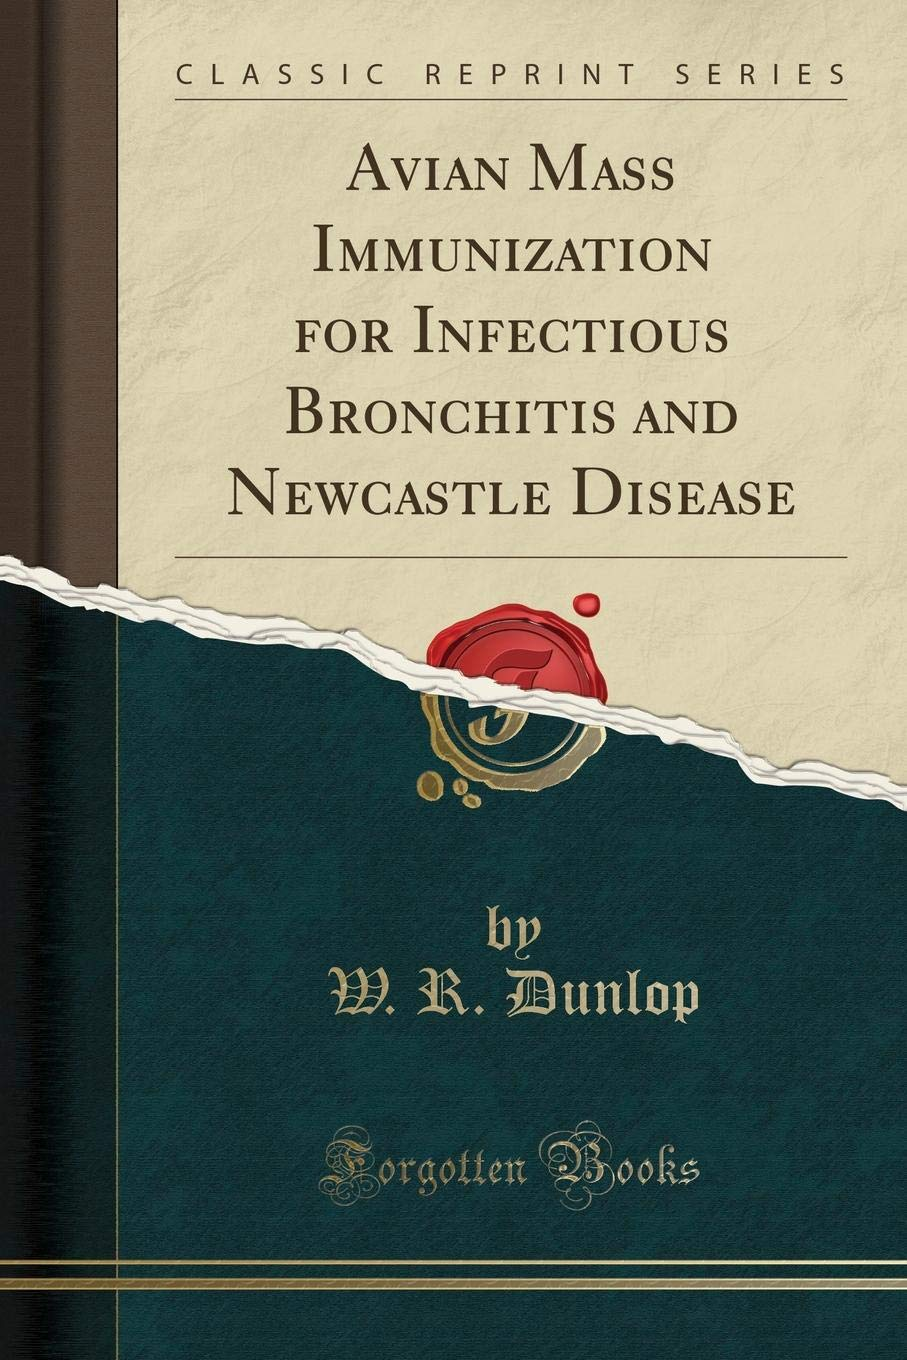 Avian Mass Immunization for Infectious Bronchitis and